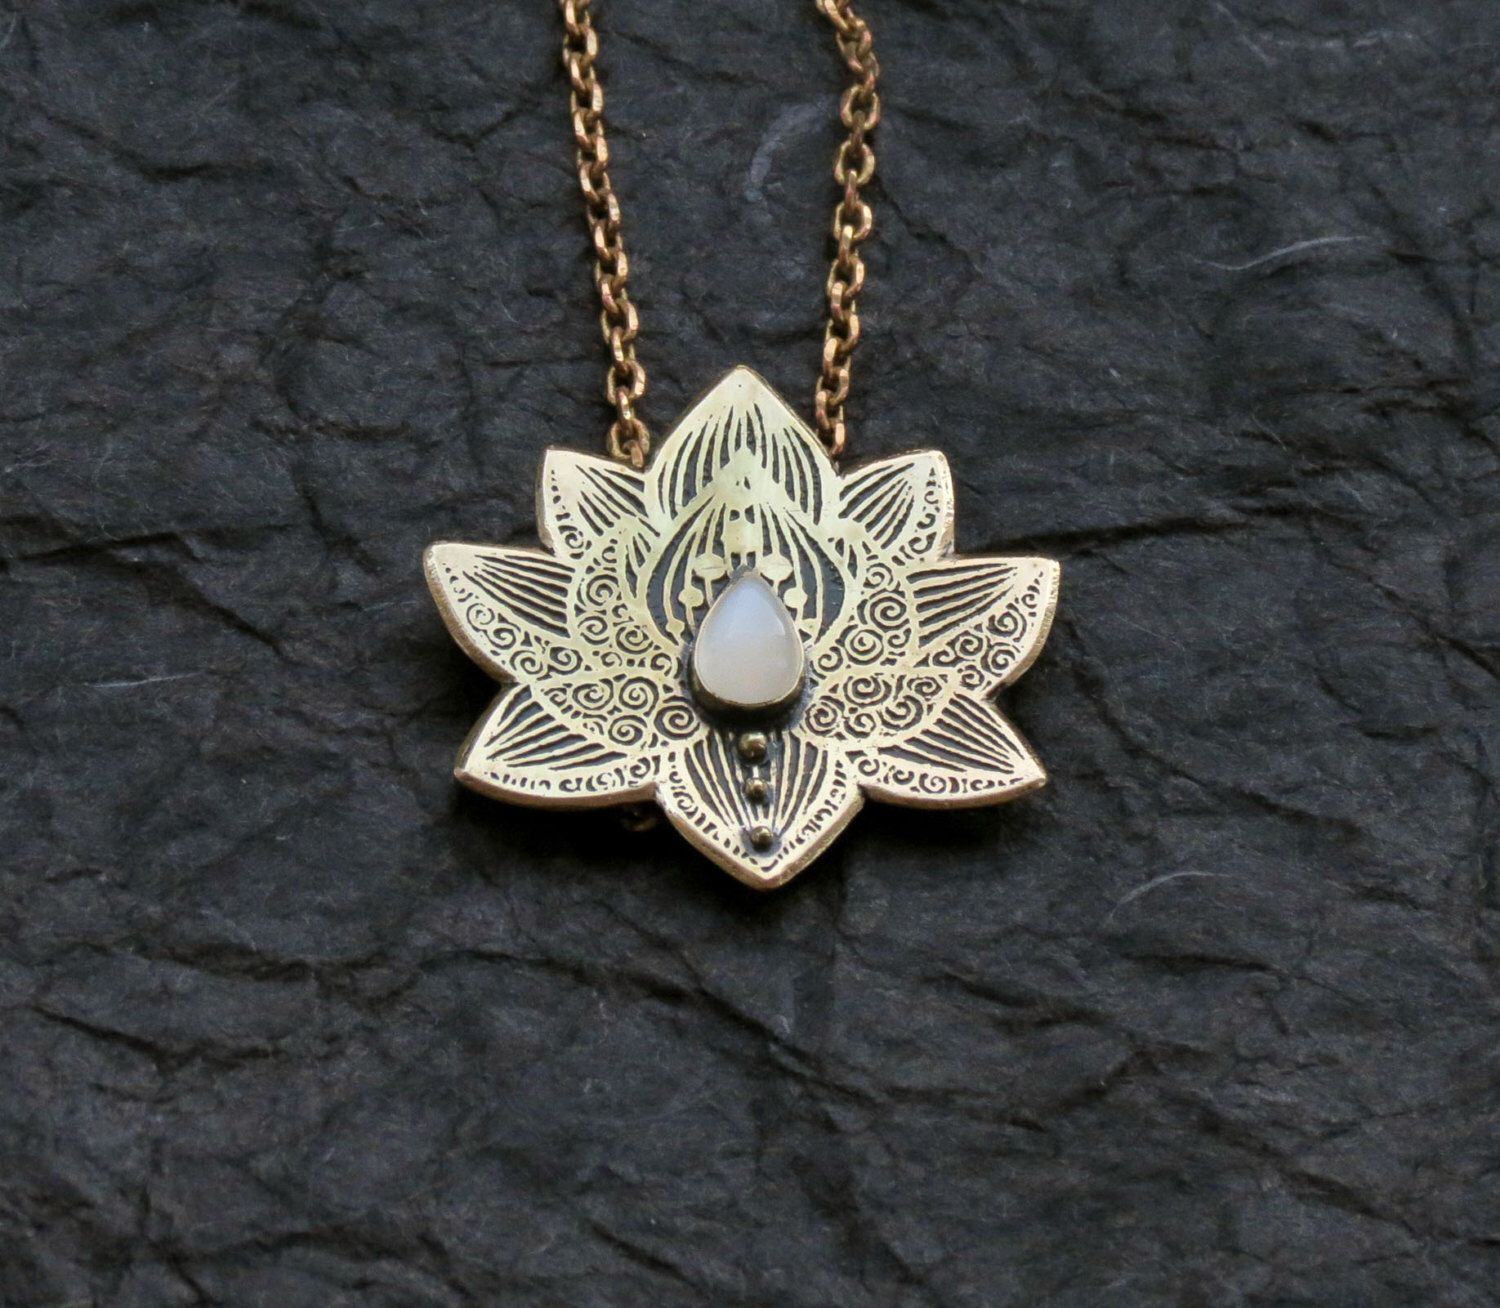 Lotus pendant water lily necklace silver flower necklace lotus pendant water lily necklace silver flower necklace moonstone necklace heart chakra necklace mozeypictures Images